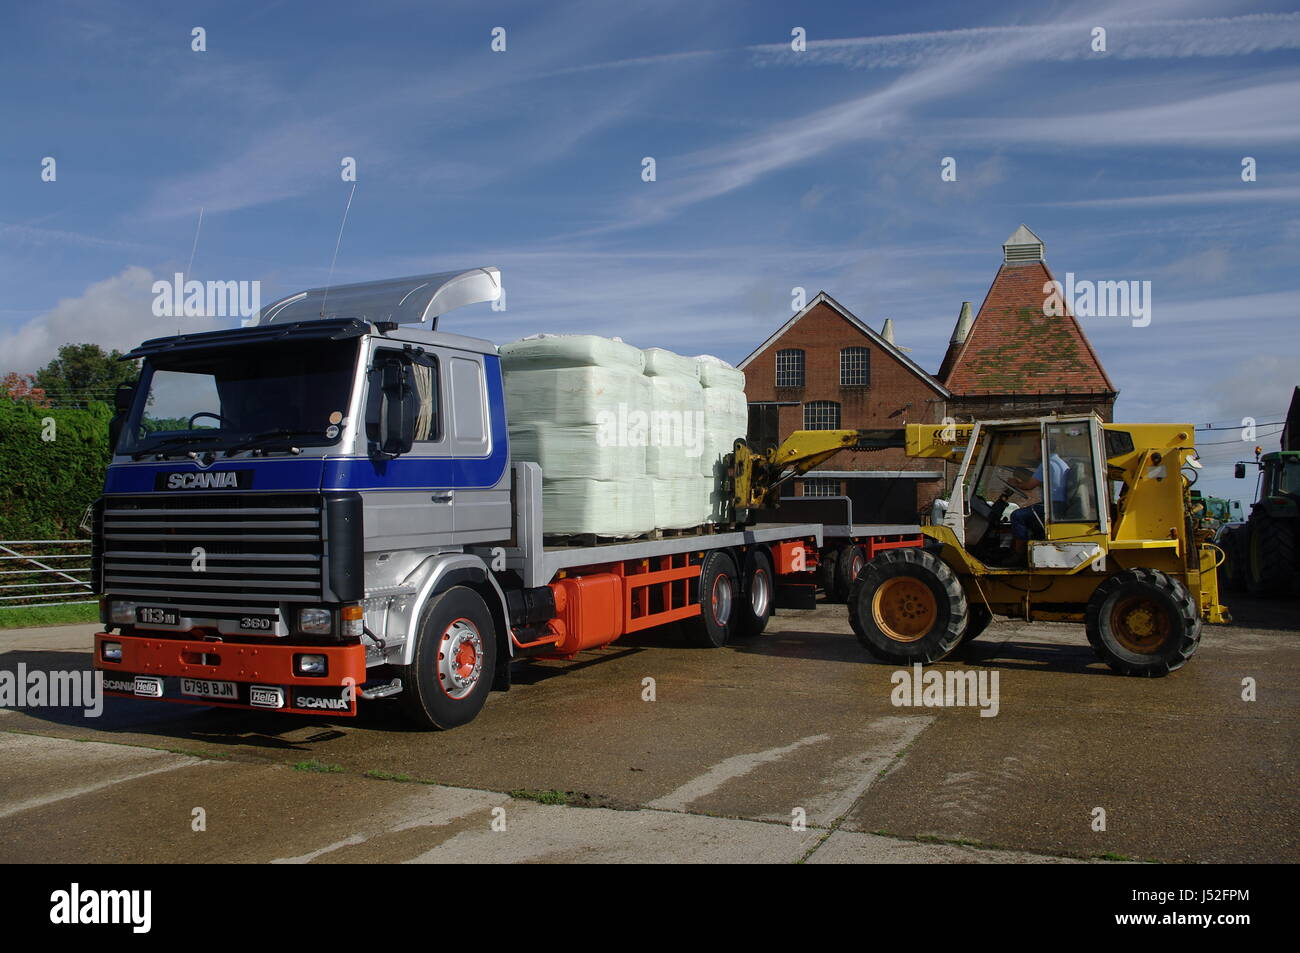 Scania 113M truck and trailer - Stock Image